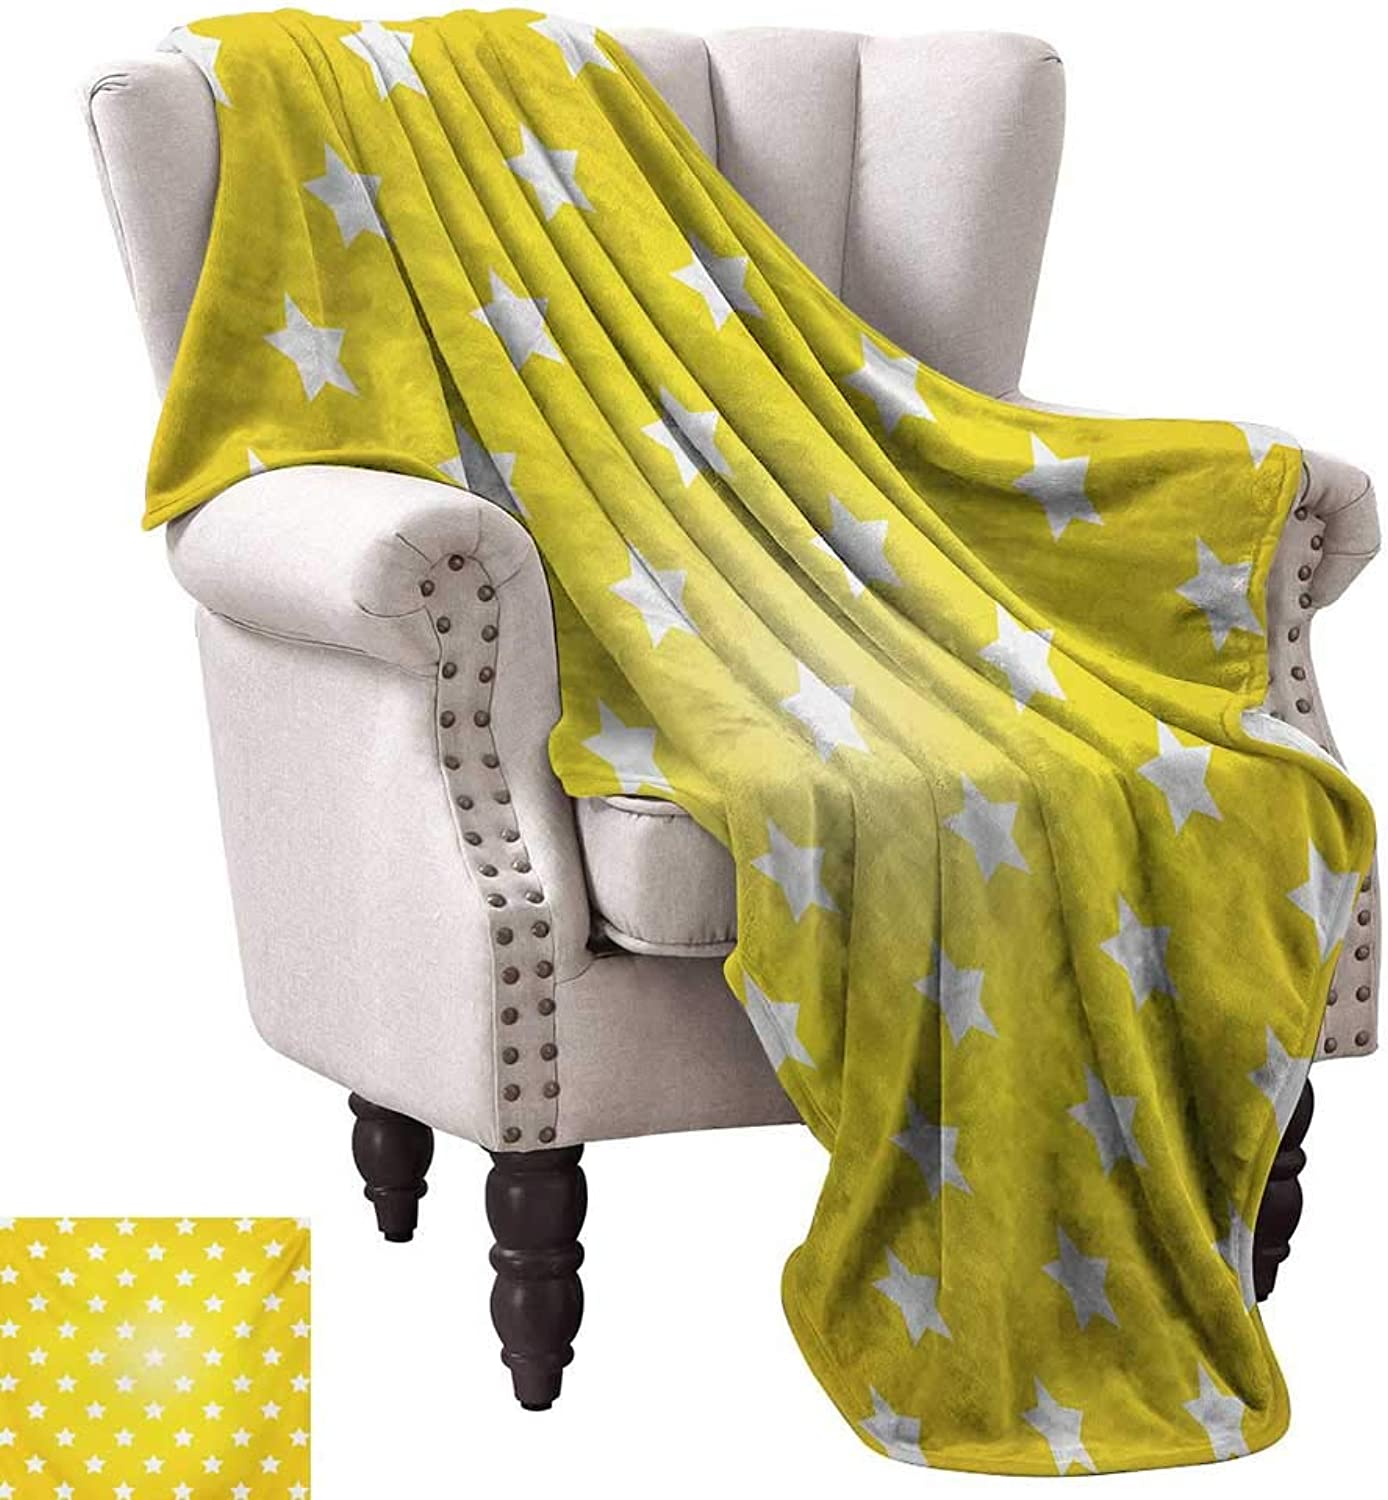 WinfreyDecor Yellow Home Throw Blanket Bursting Vibrant Hanging Stars Fun Retro Kids with Graphic Design Artistic Print Traveling,Hiking,Camping,Full Queen,TV,Cabin 50  Wx60 L White Yellow